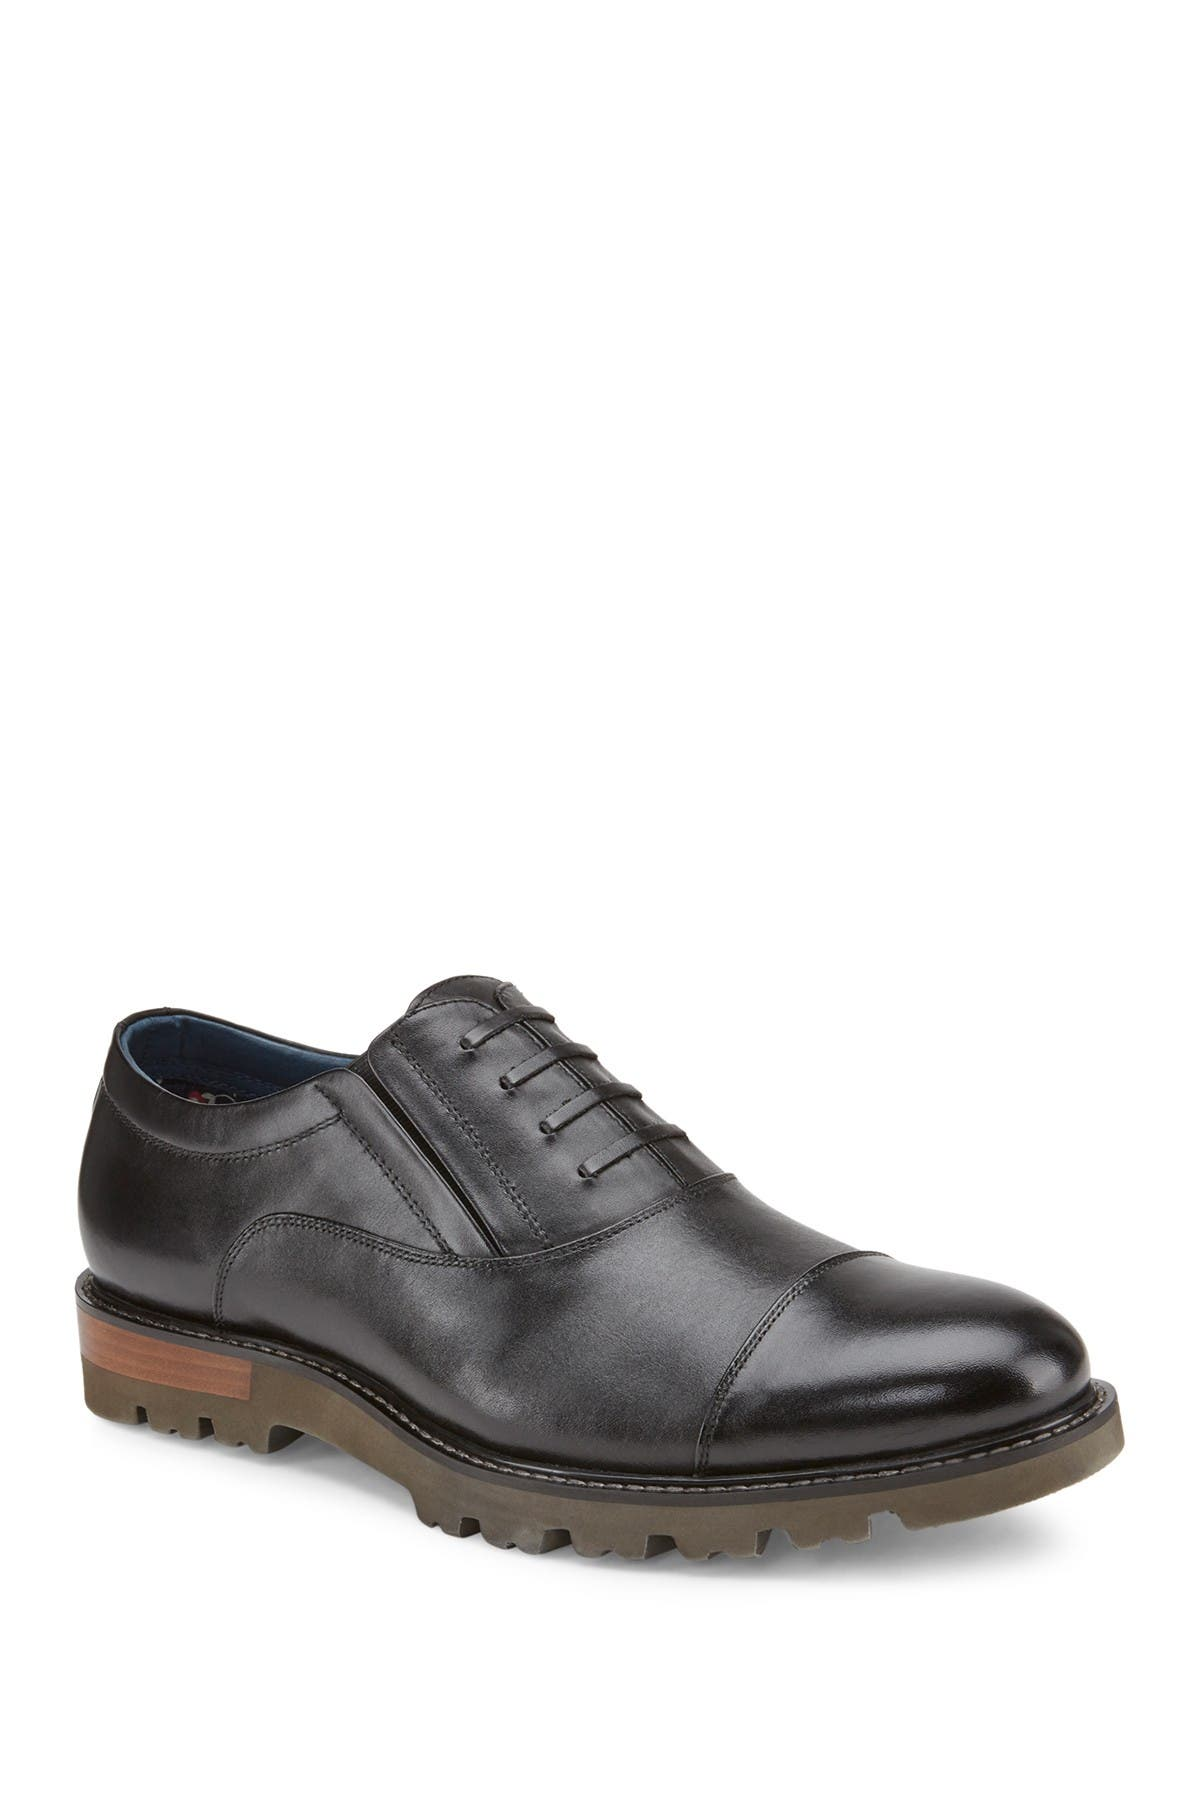 Image of Vintage Foundry Jeremy Cap Toe Leather Oxford